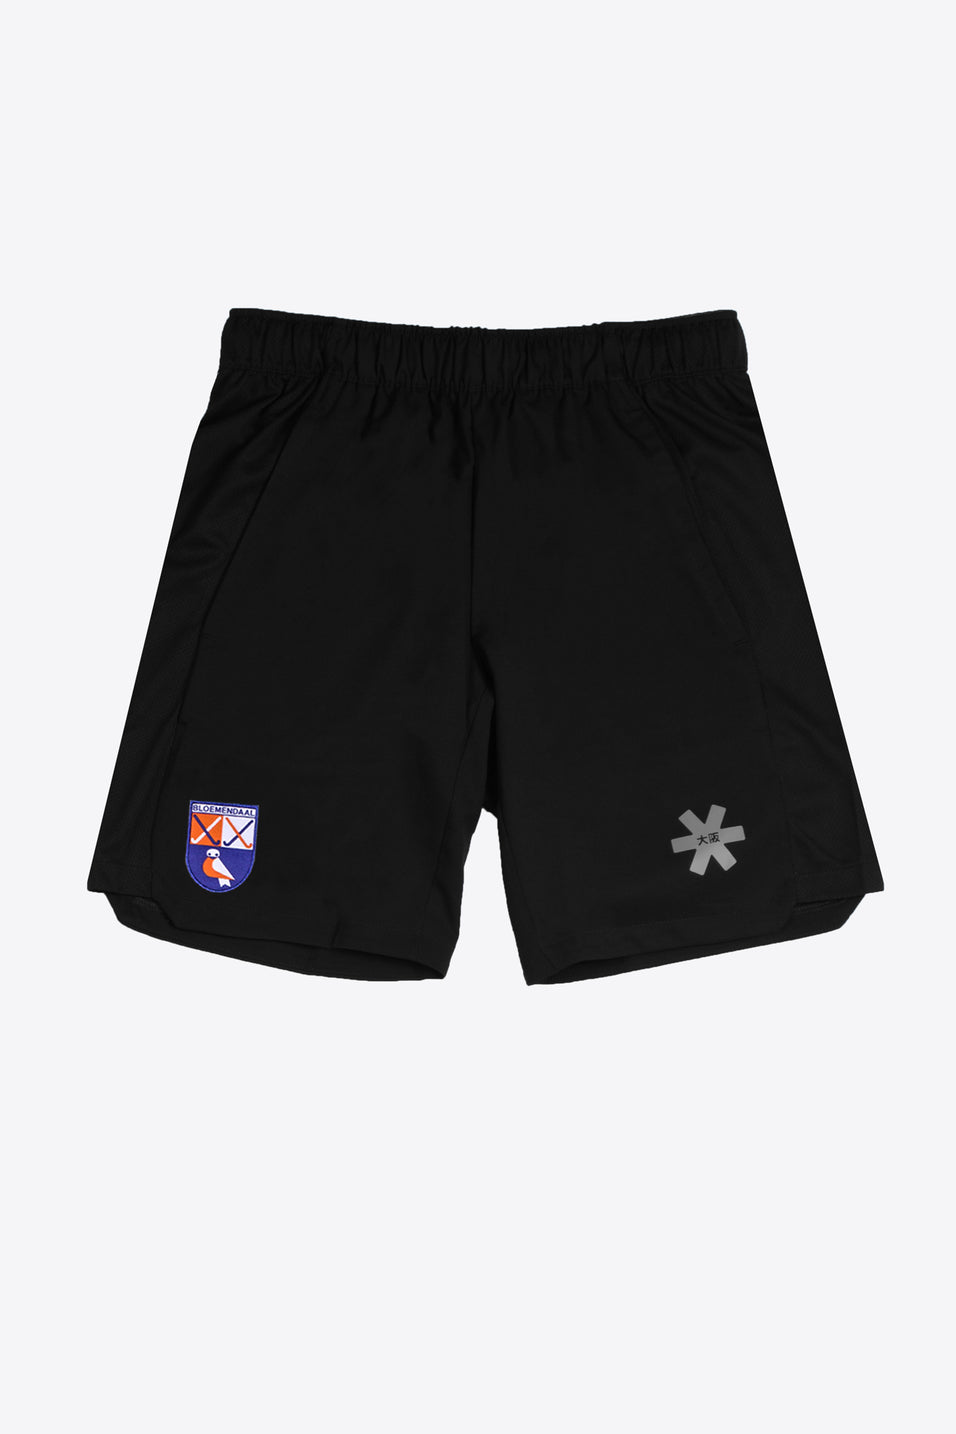 HC Bloemendaal Keeper Short - Black